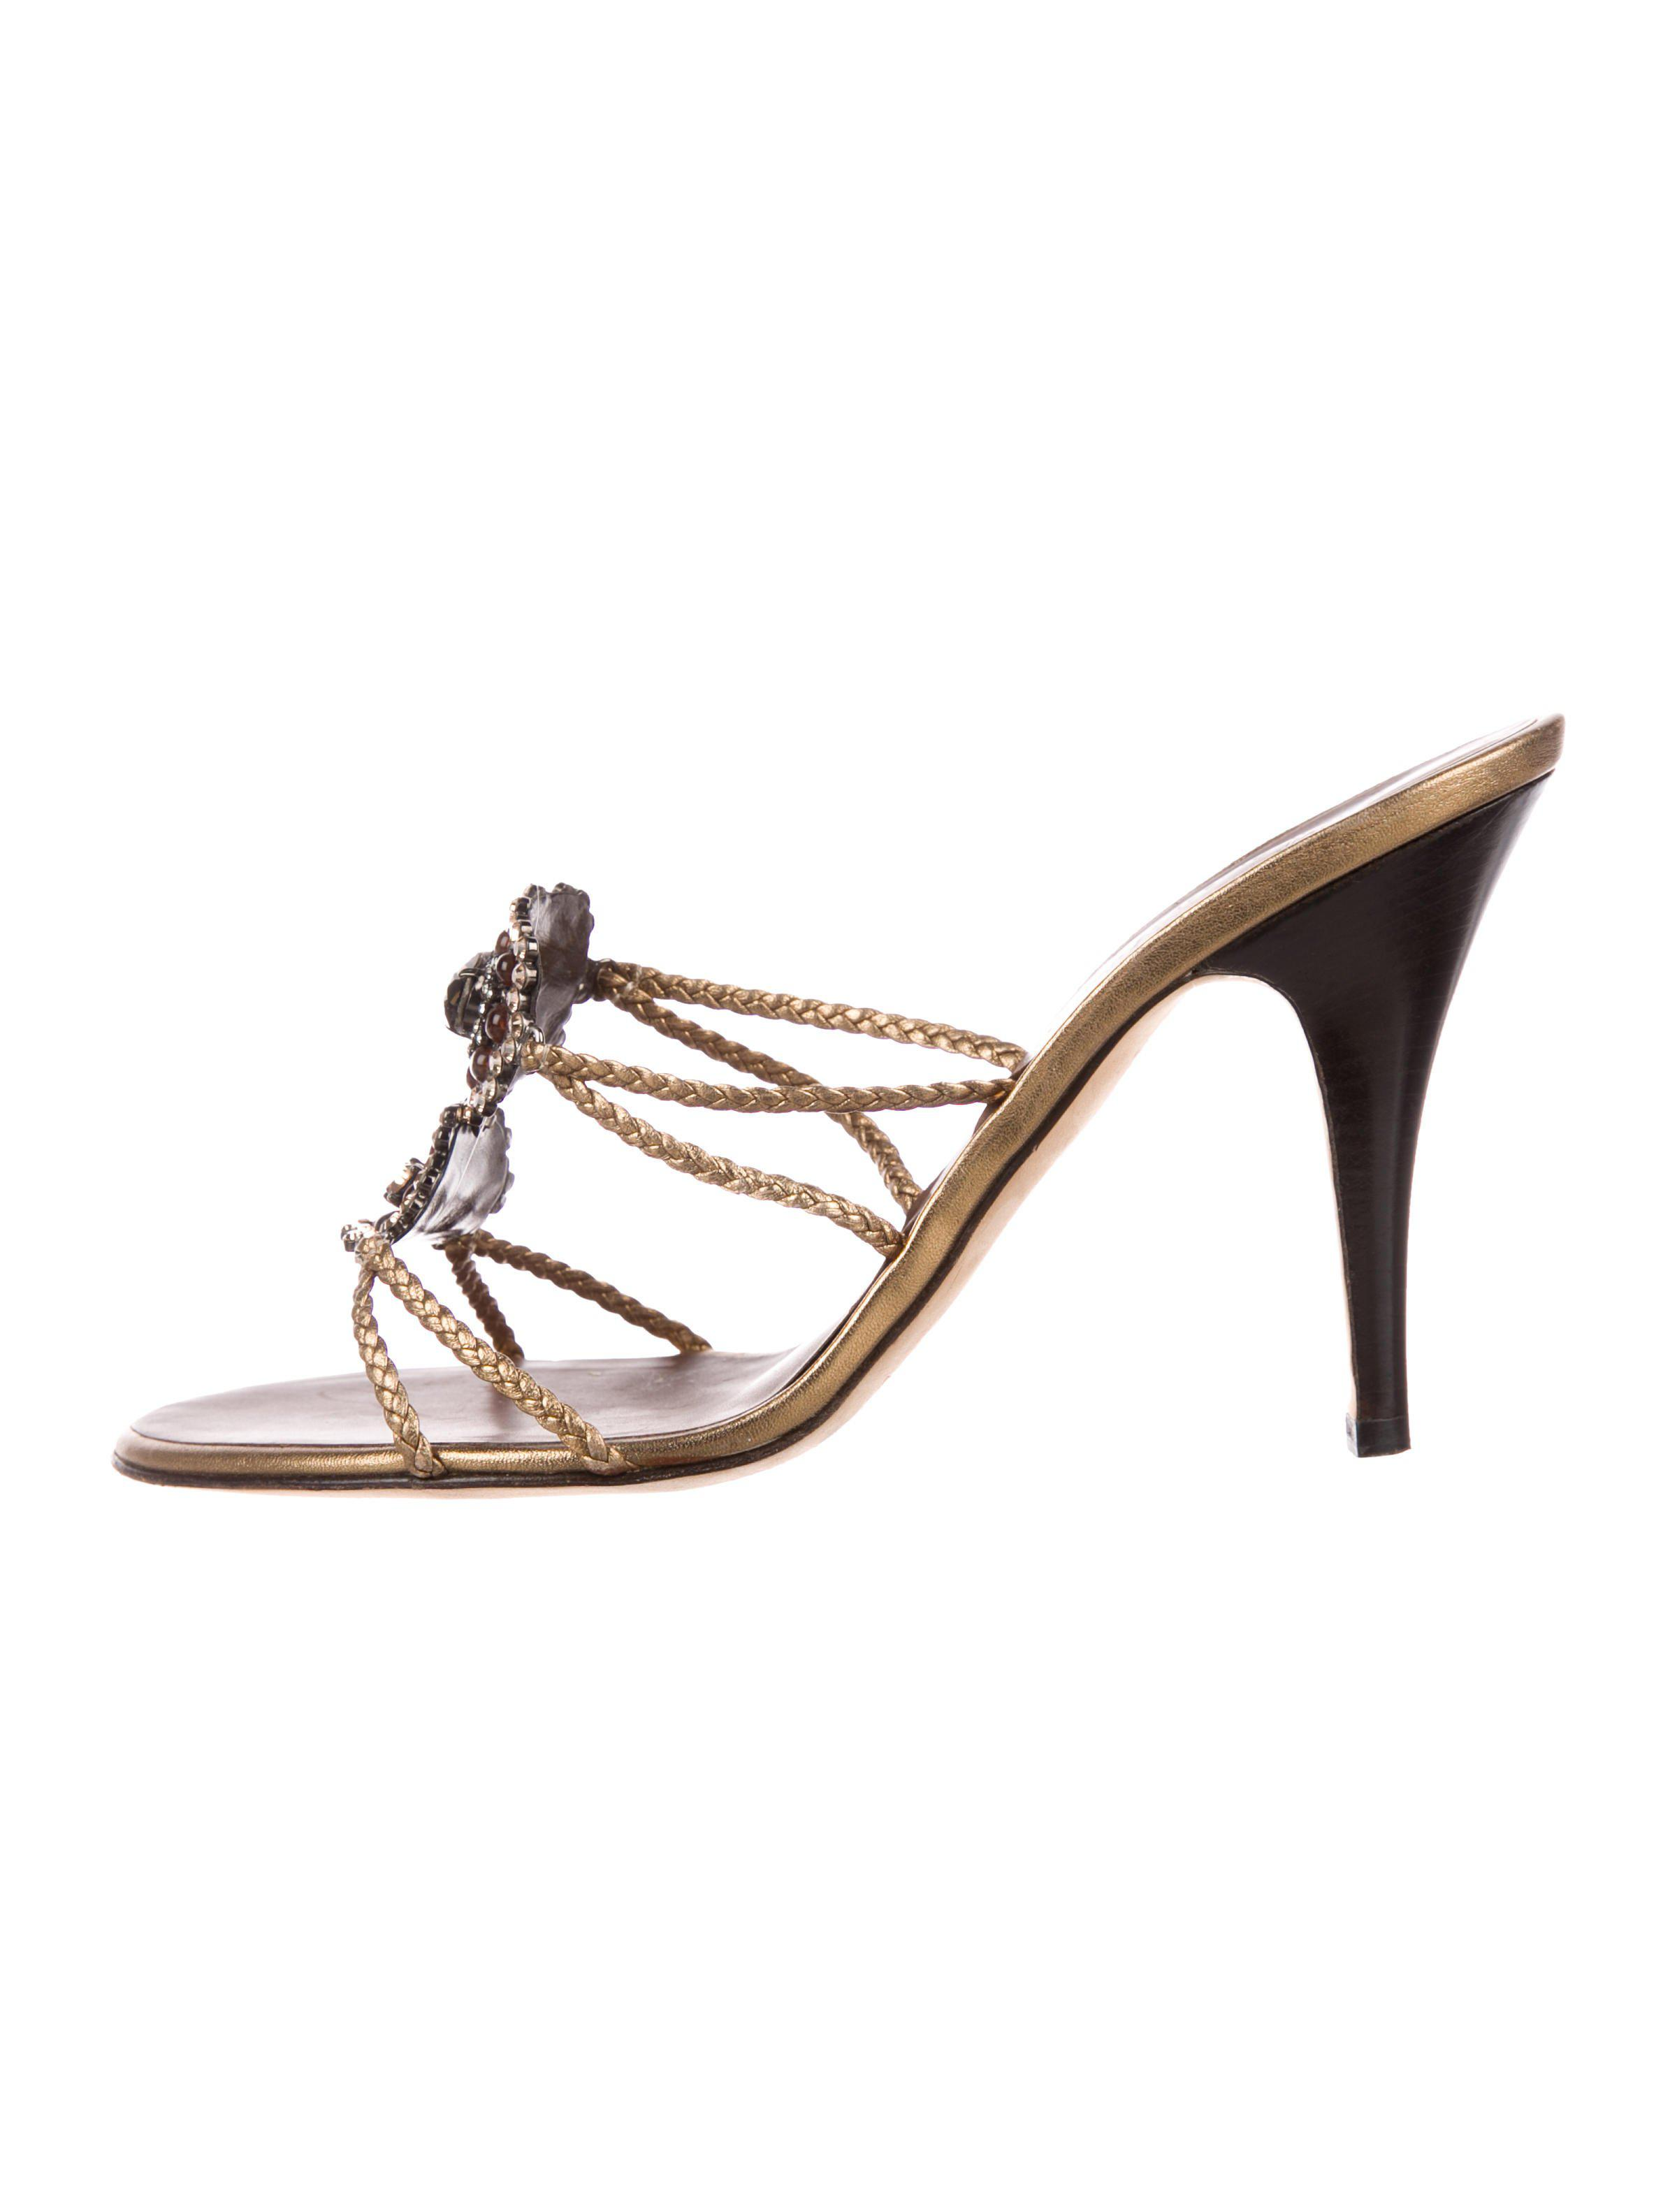 14a94471c7c9 Lyst - Giuseppe Zanotti Embellished Leather Sandals Gold in Metallic